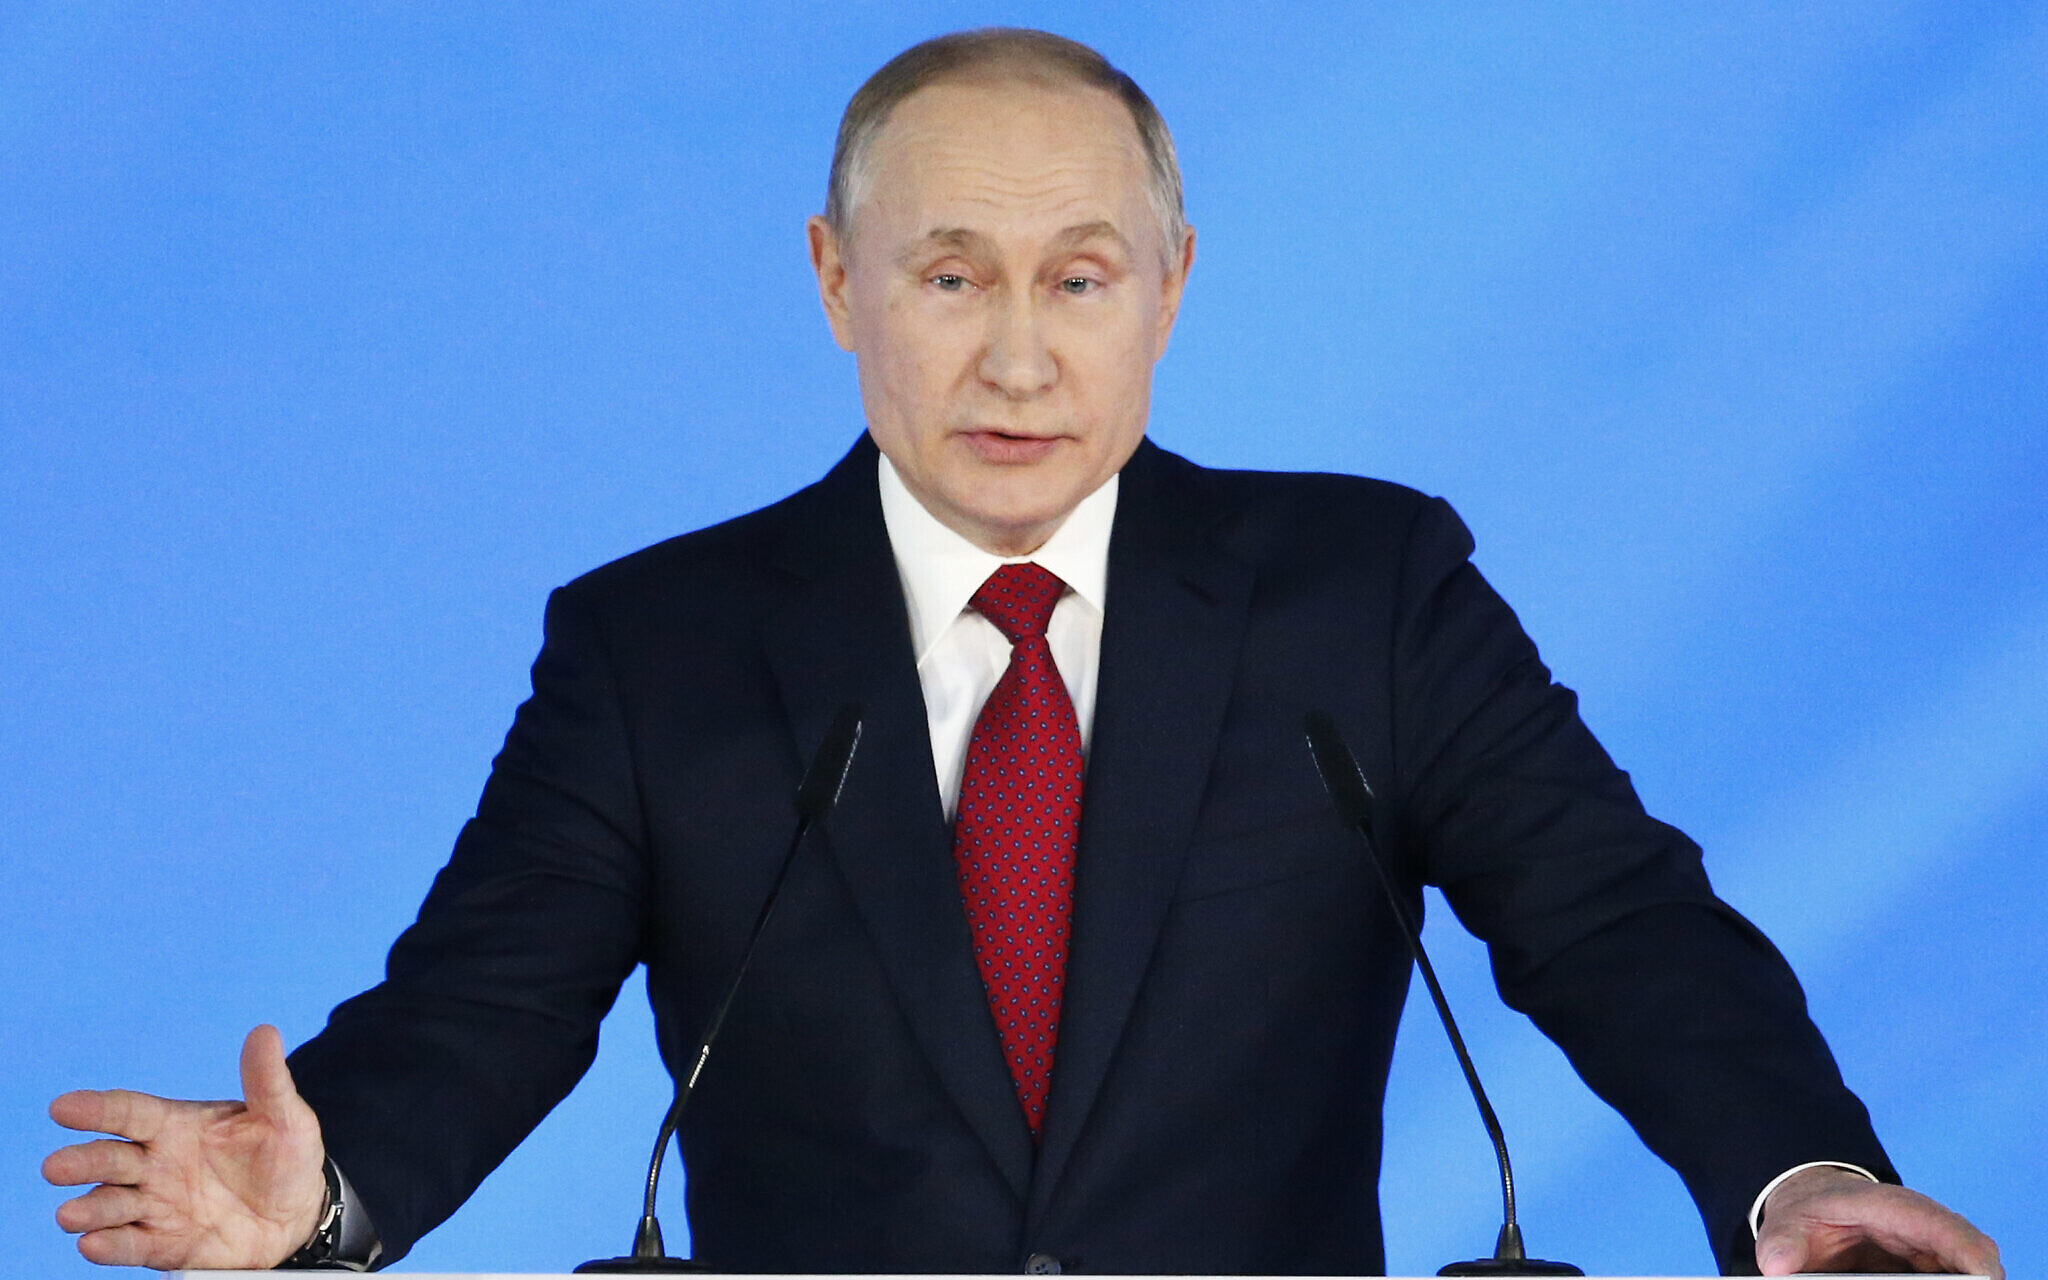 Putin Proposes Constitutional Tweaks That Could Keep Him In Power For Years The Times Of Israel